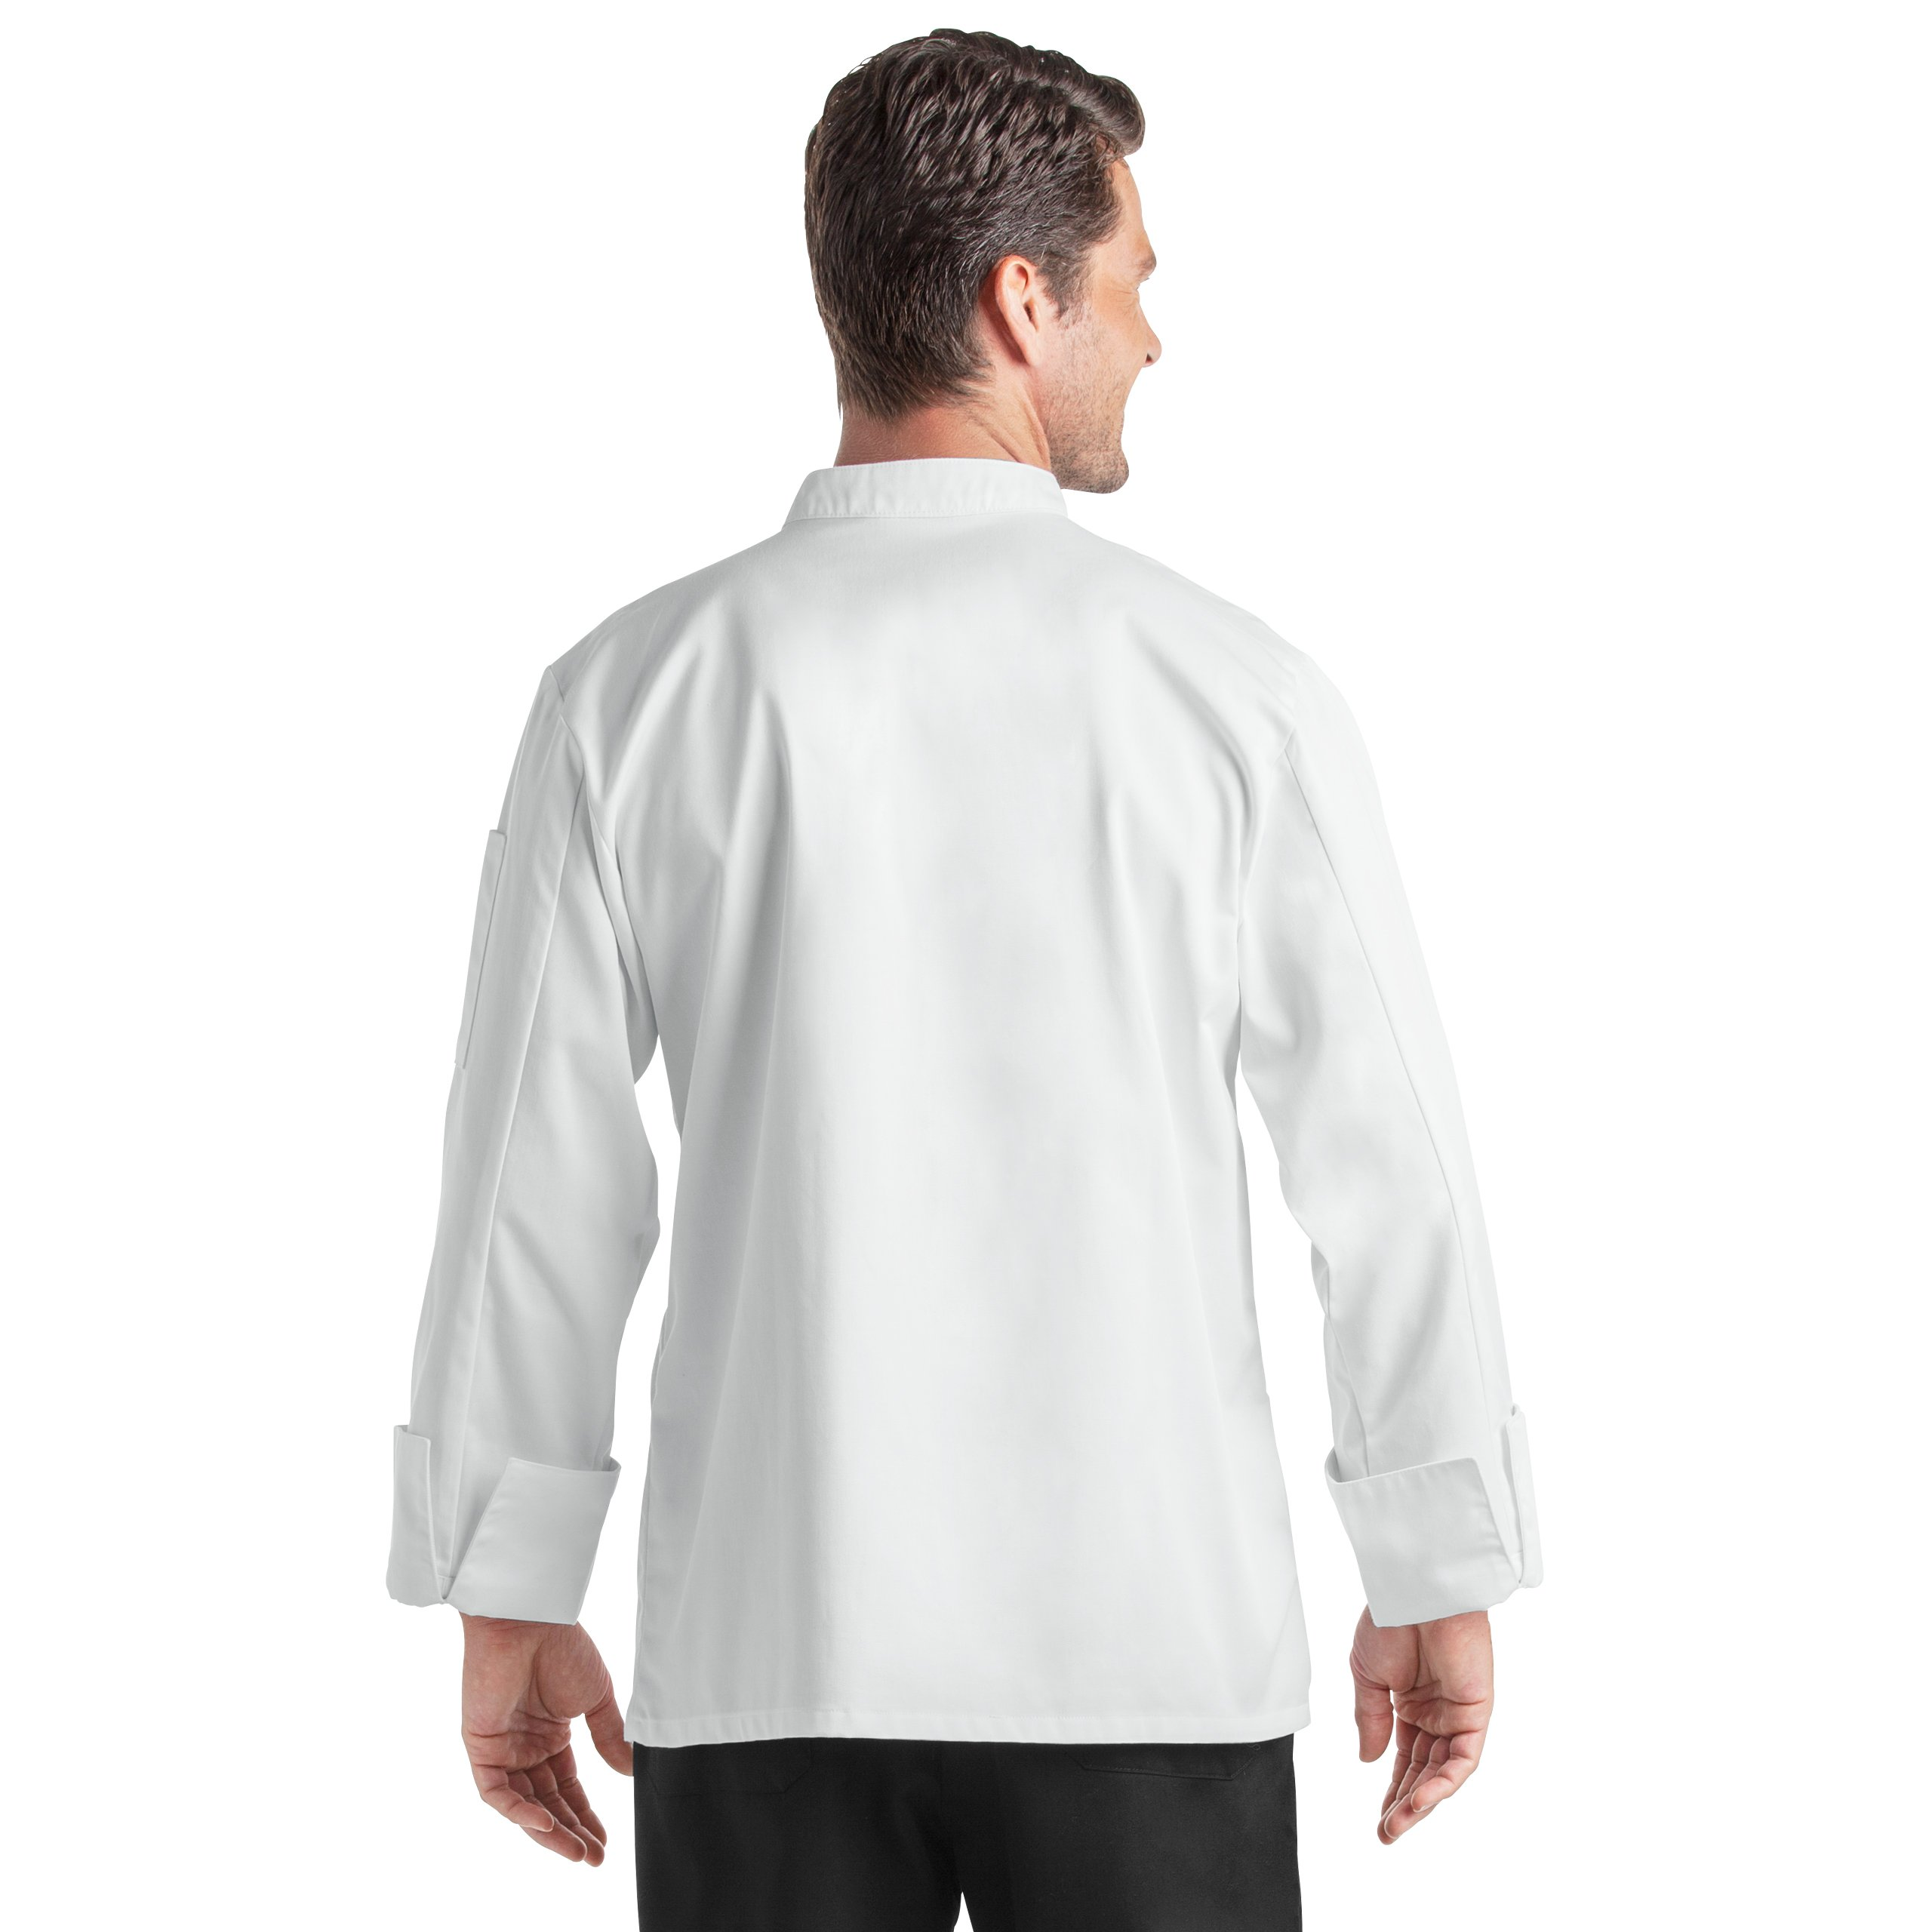 Unisex Long Sleeve Chef Coat/Double Breasted/Plastic Button Reversible Front Closure (S-2X, 2 Colors) (White, Medium) by On The Line (Image #8)